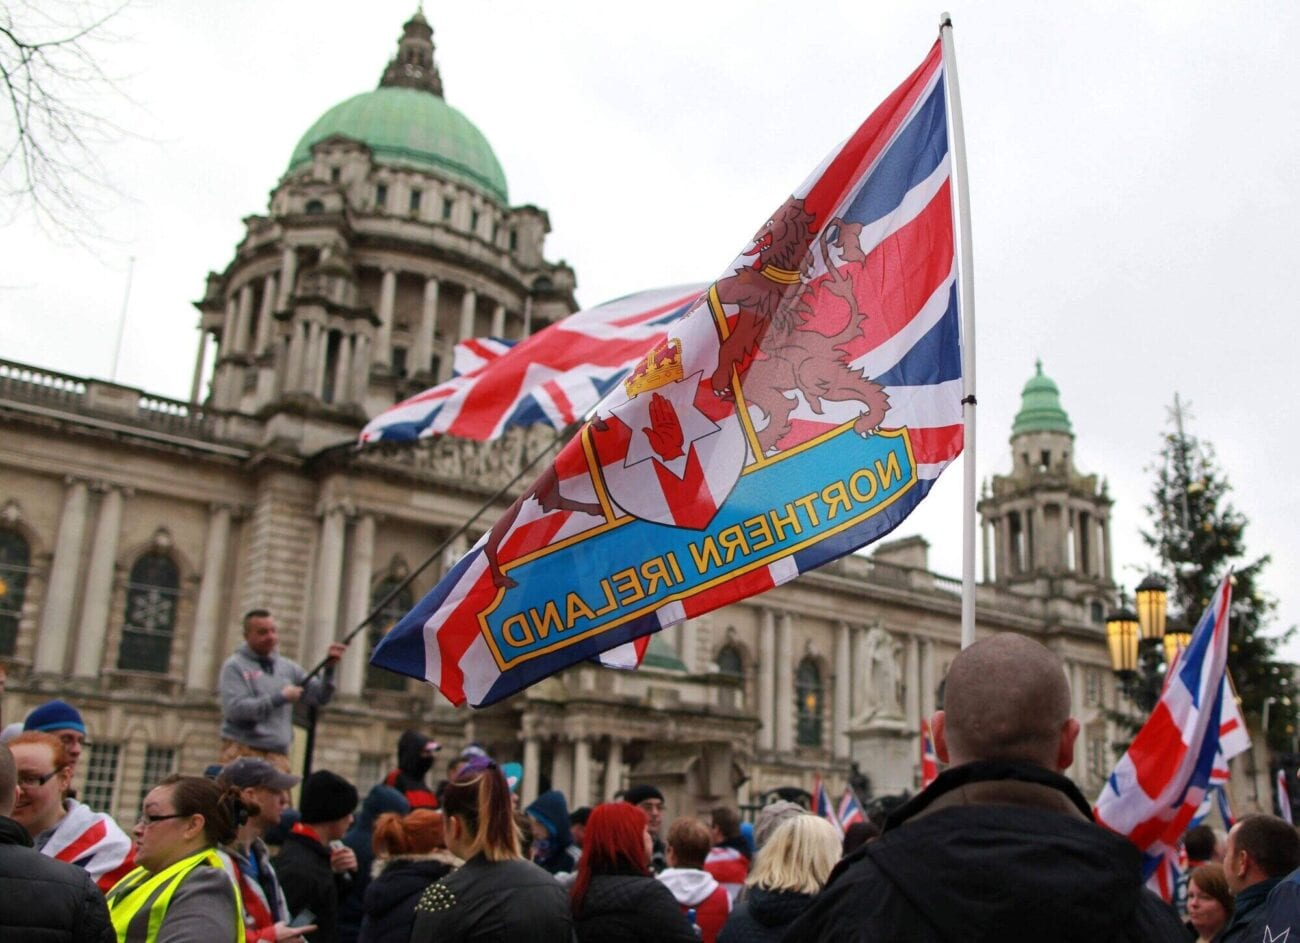 Do you know what's happening in Northern Ireland this week? Violent protests are causing a lot of concern. Check out what went down in Belfast.